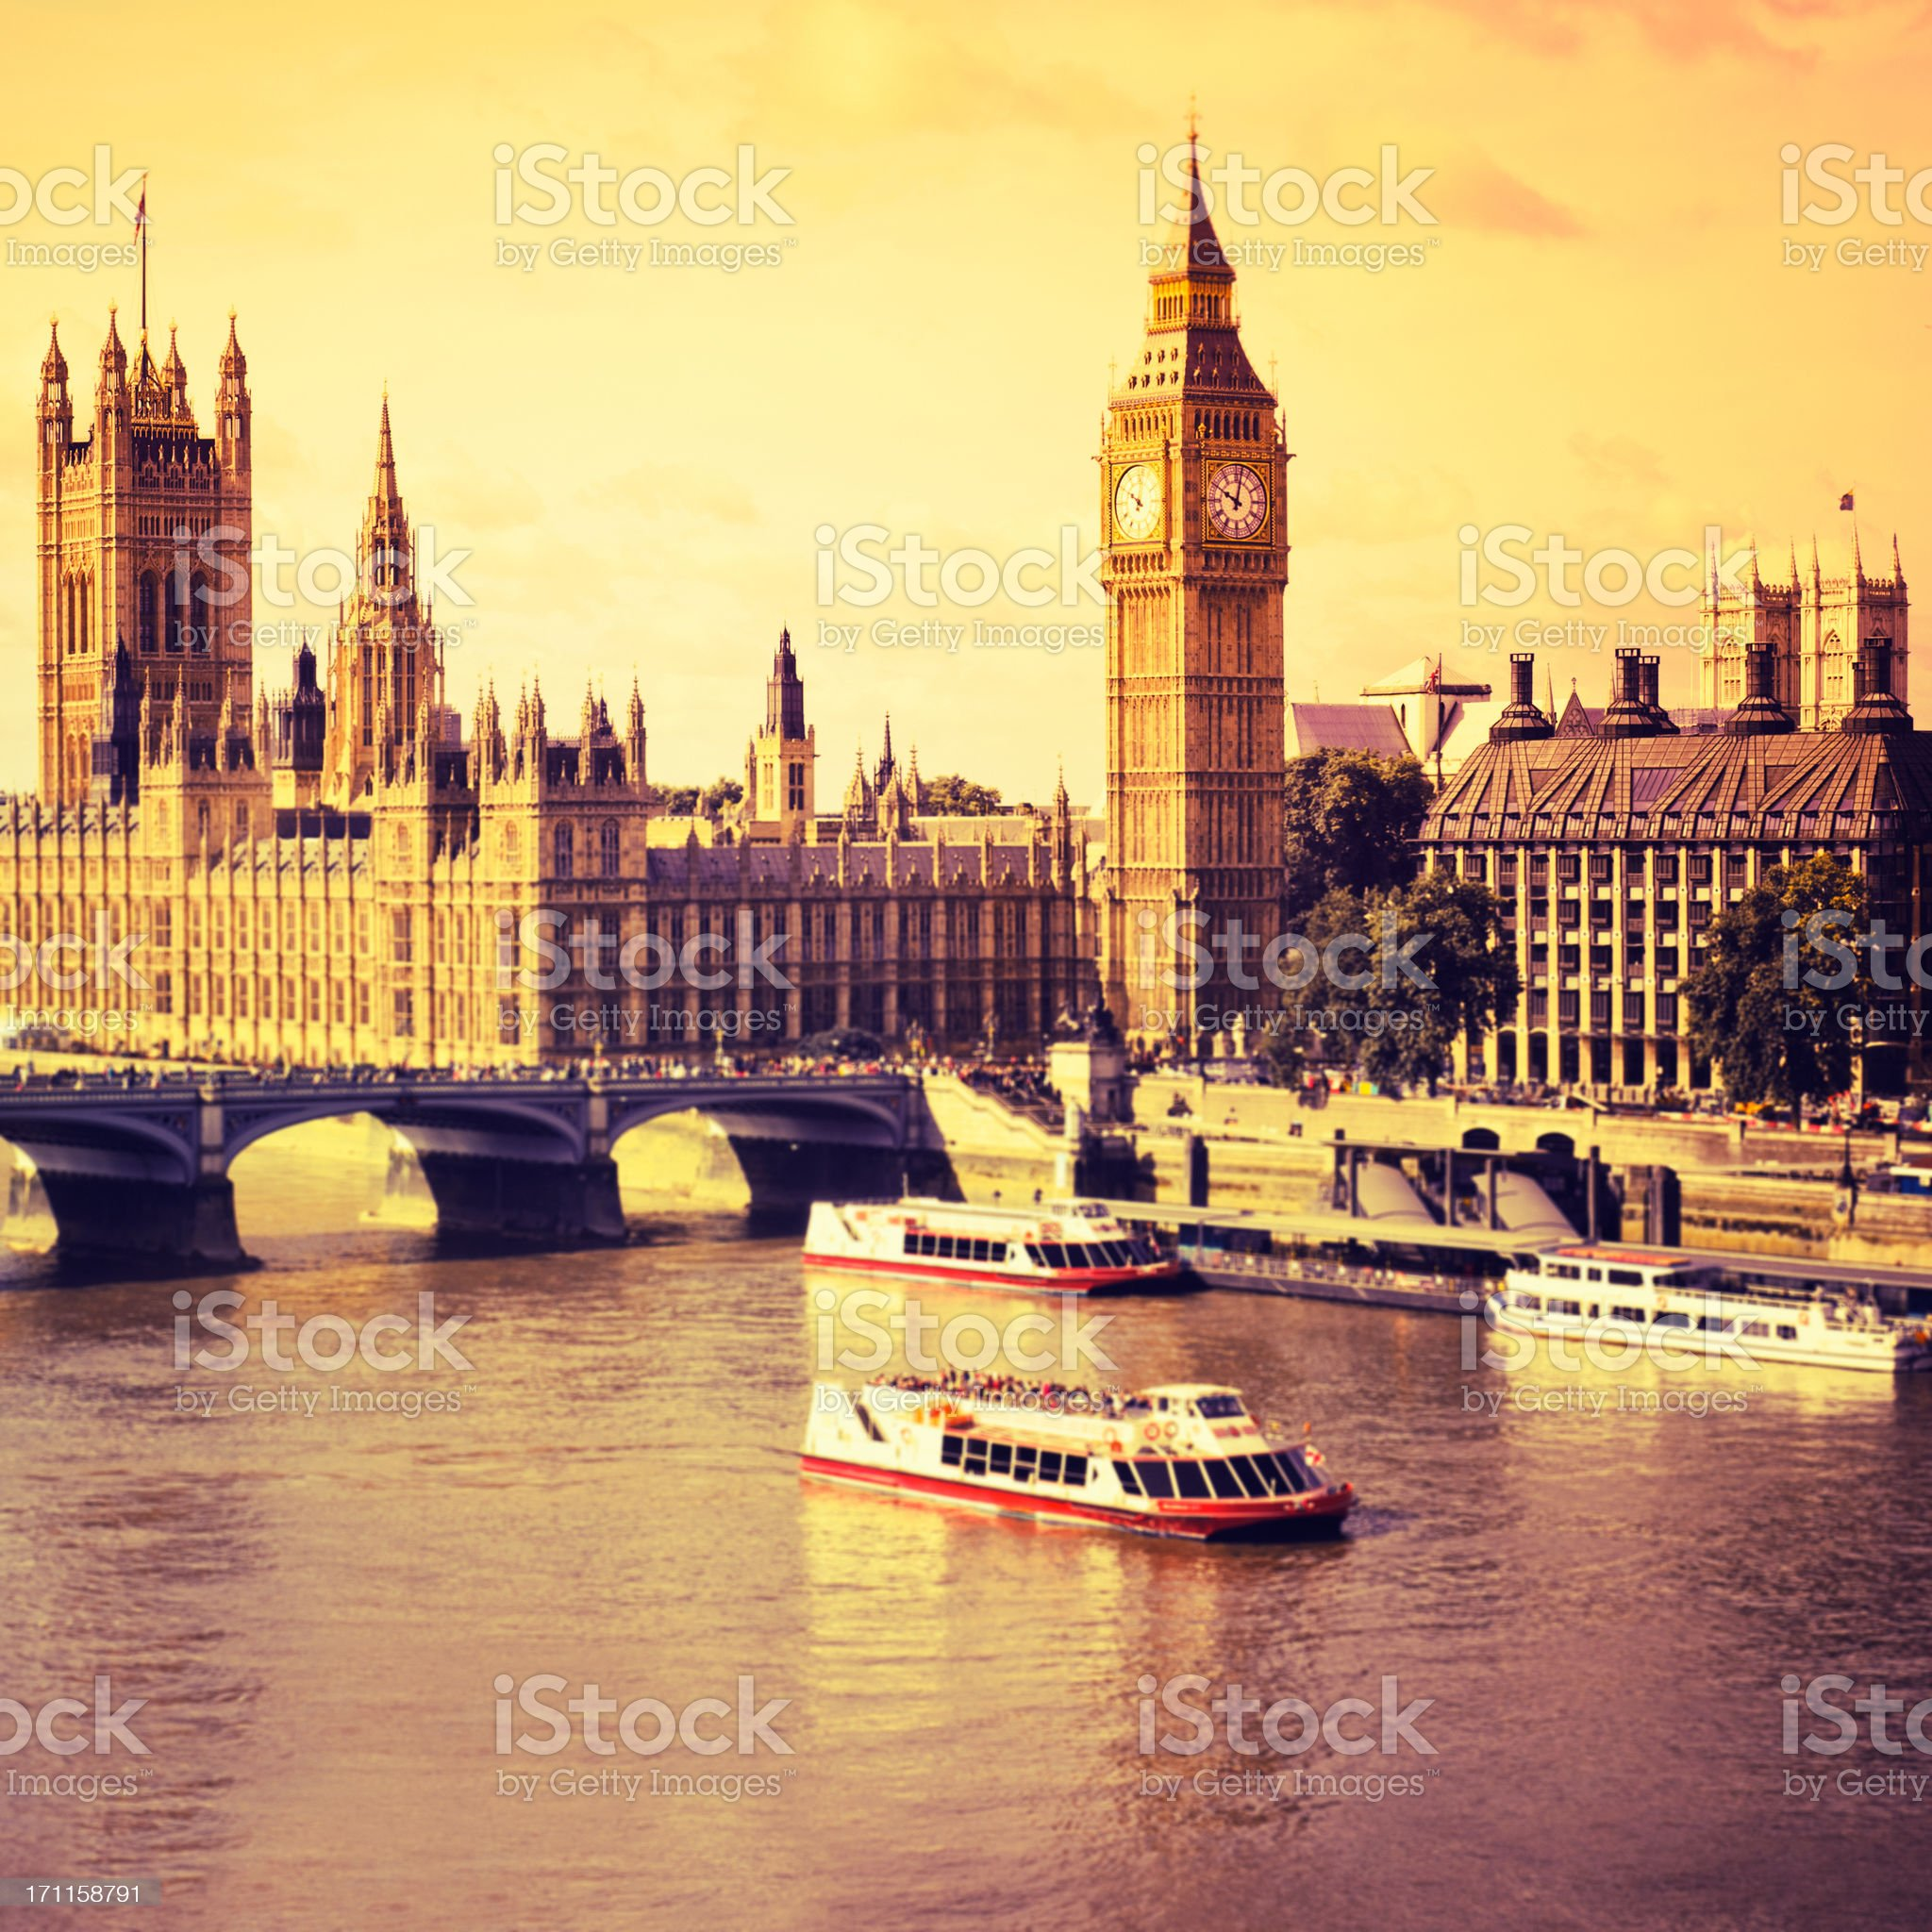 London Big Ben and House of Parliament royalty-free stock photo